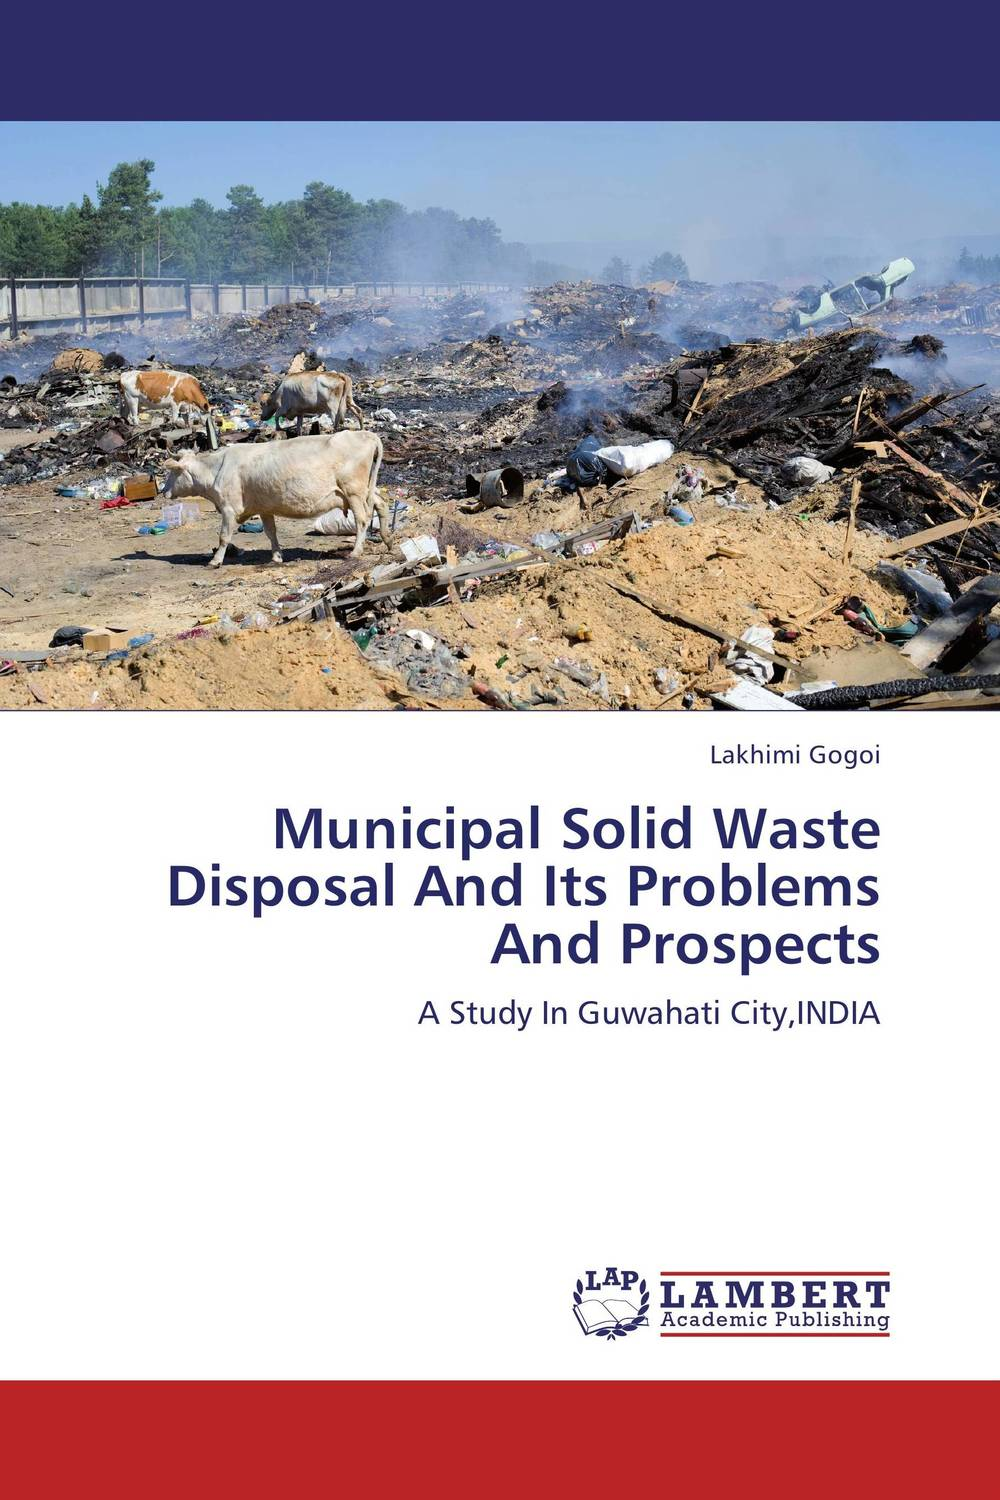 Municipal Solid Waste Disposal And Its Problems And Prospects dereje azemraw senshaw potential greenhouse gas emission reduction from municipal solid waste